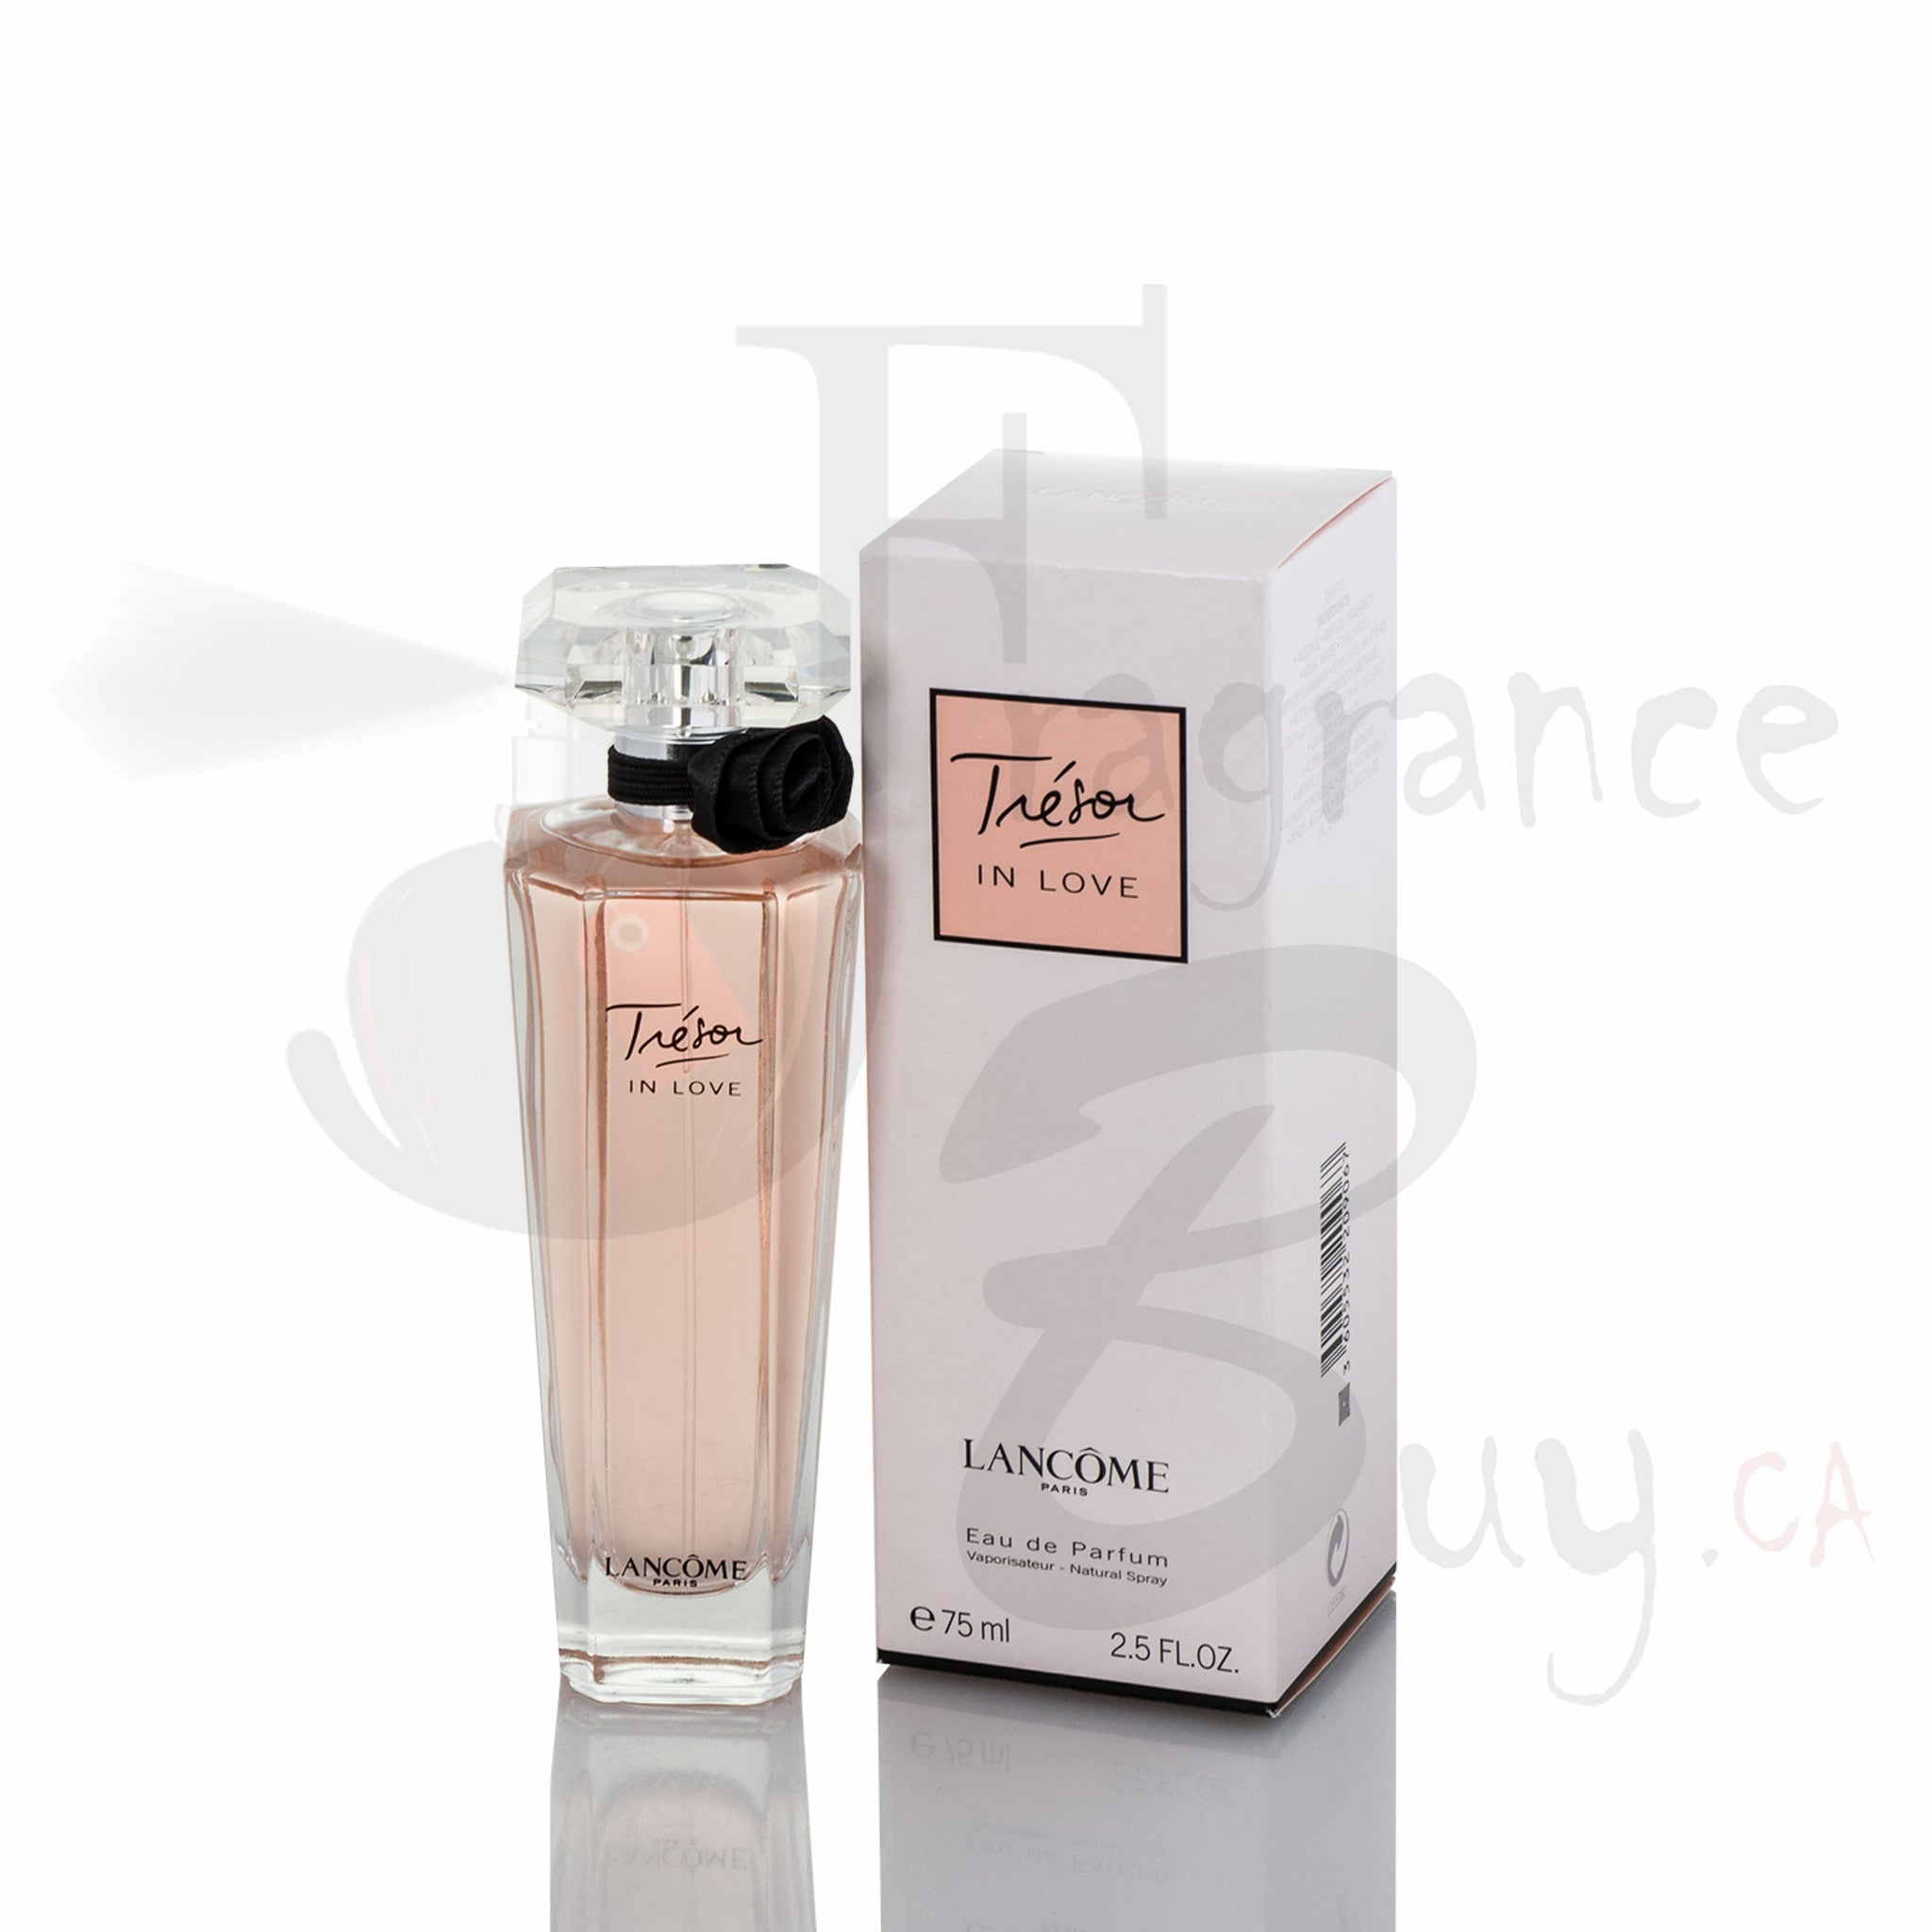 Tresor in Love by Lancome For Woman